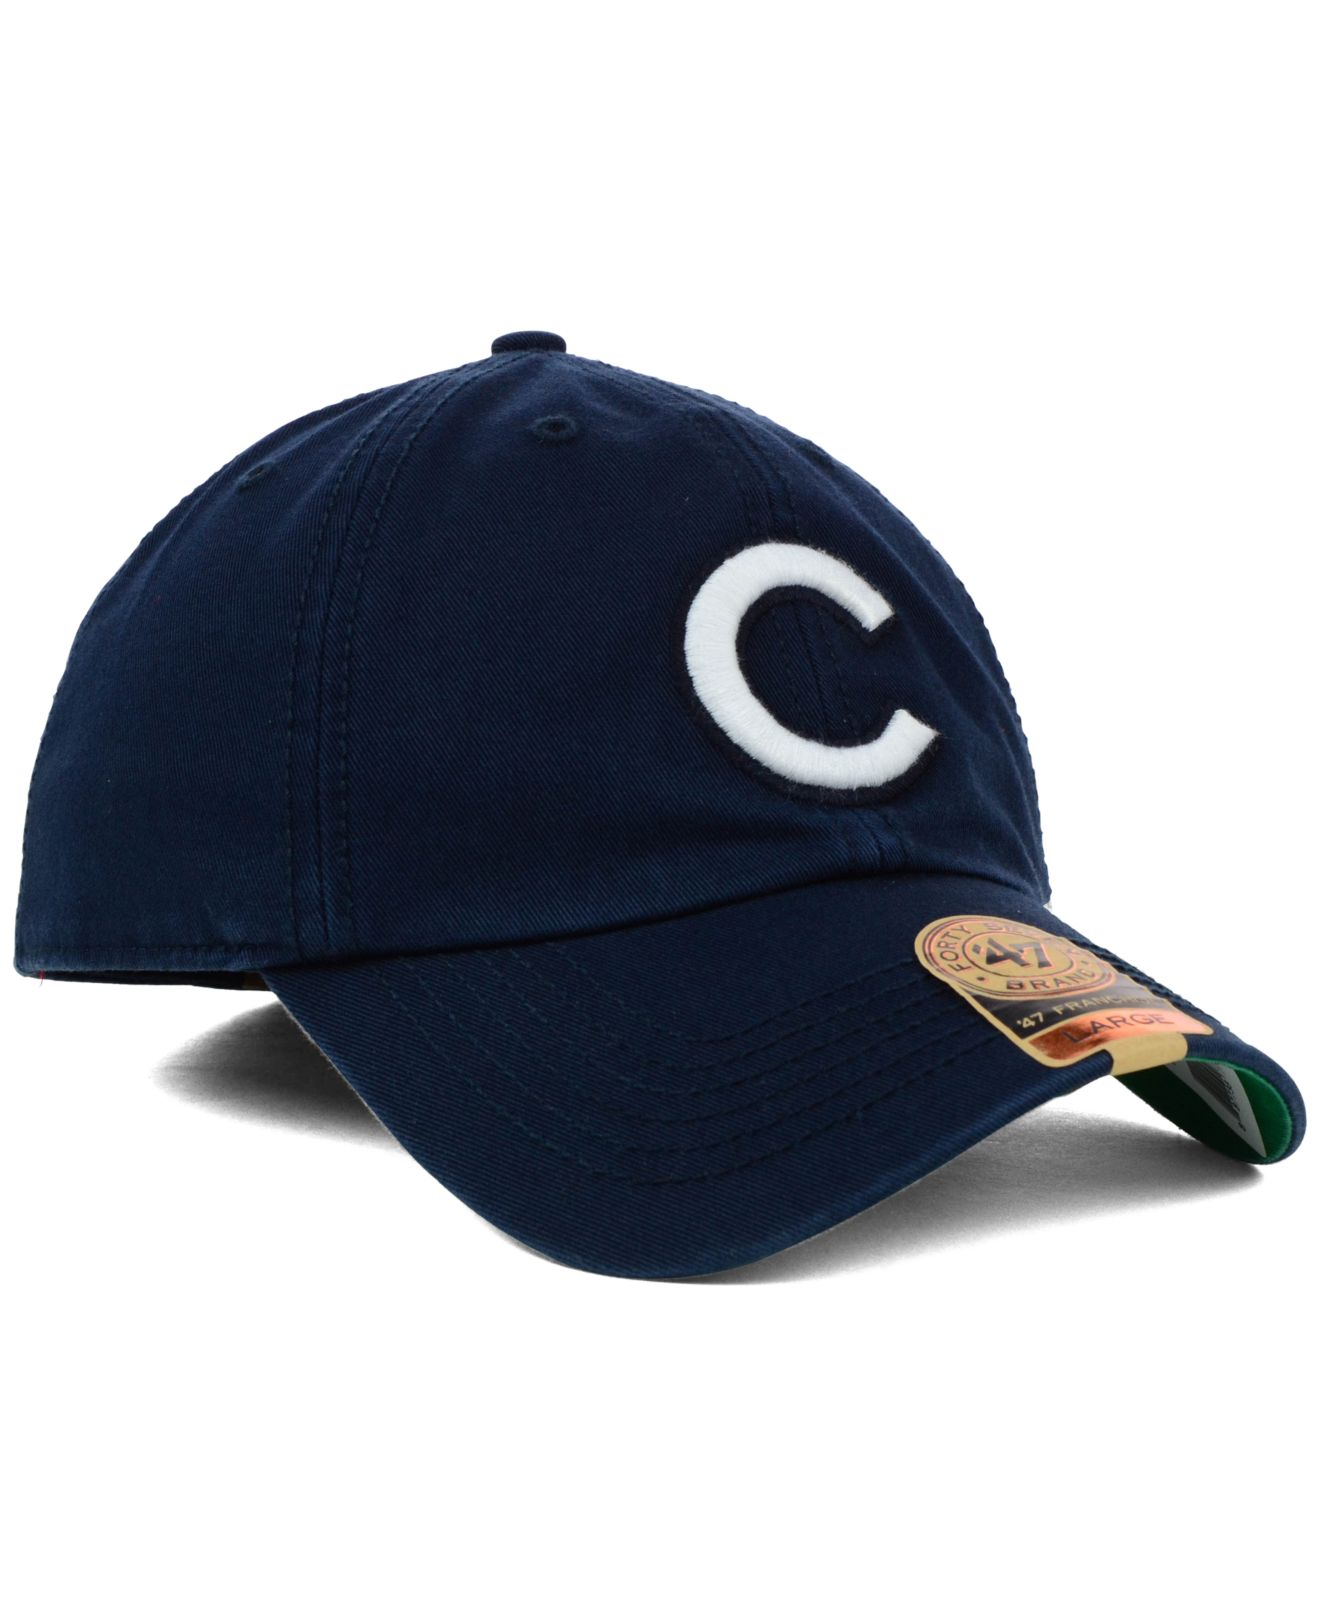 8b9cc4bf86c86 ... italy lyst 47 brand chicago cubs mlb harbor franchise cap in blue for  men f6a0d 362b6